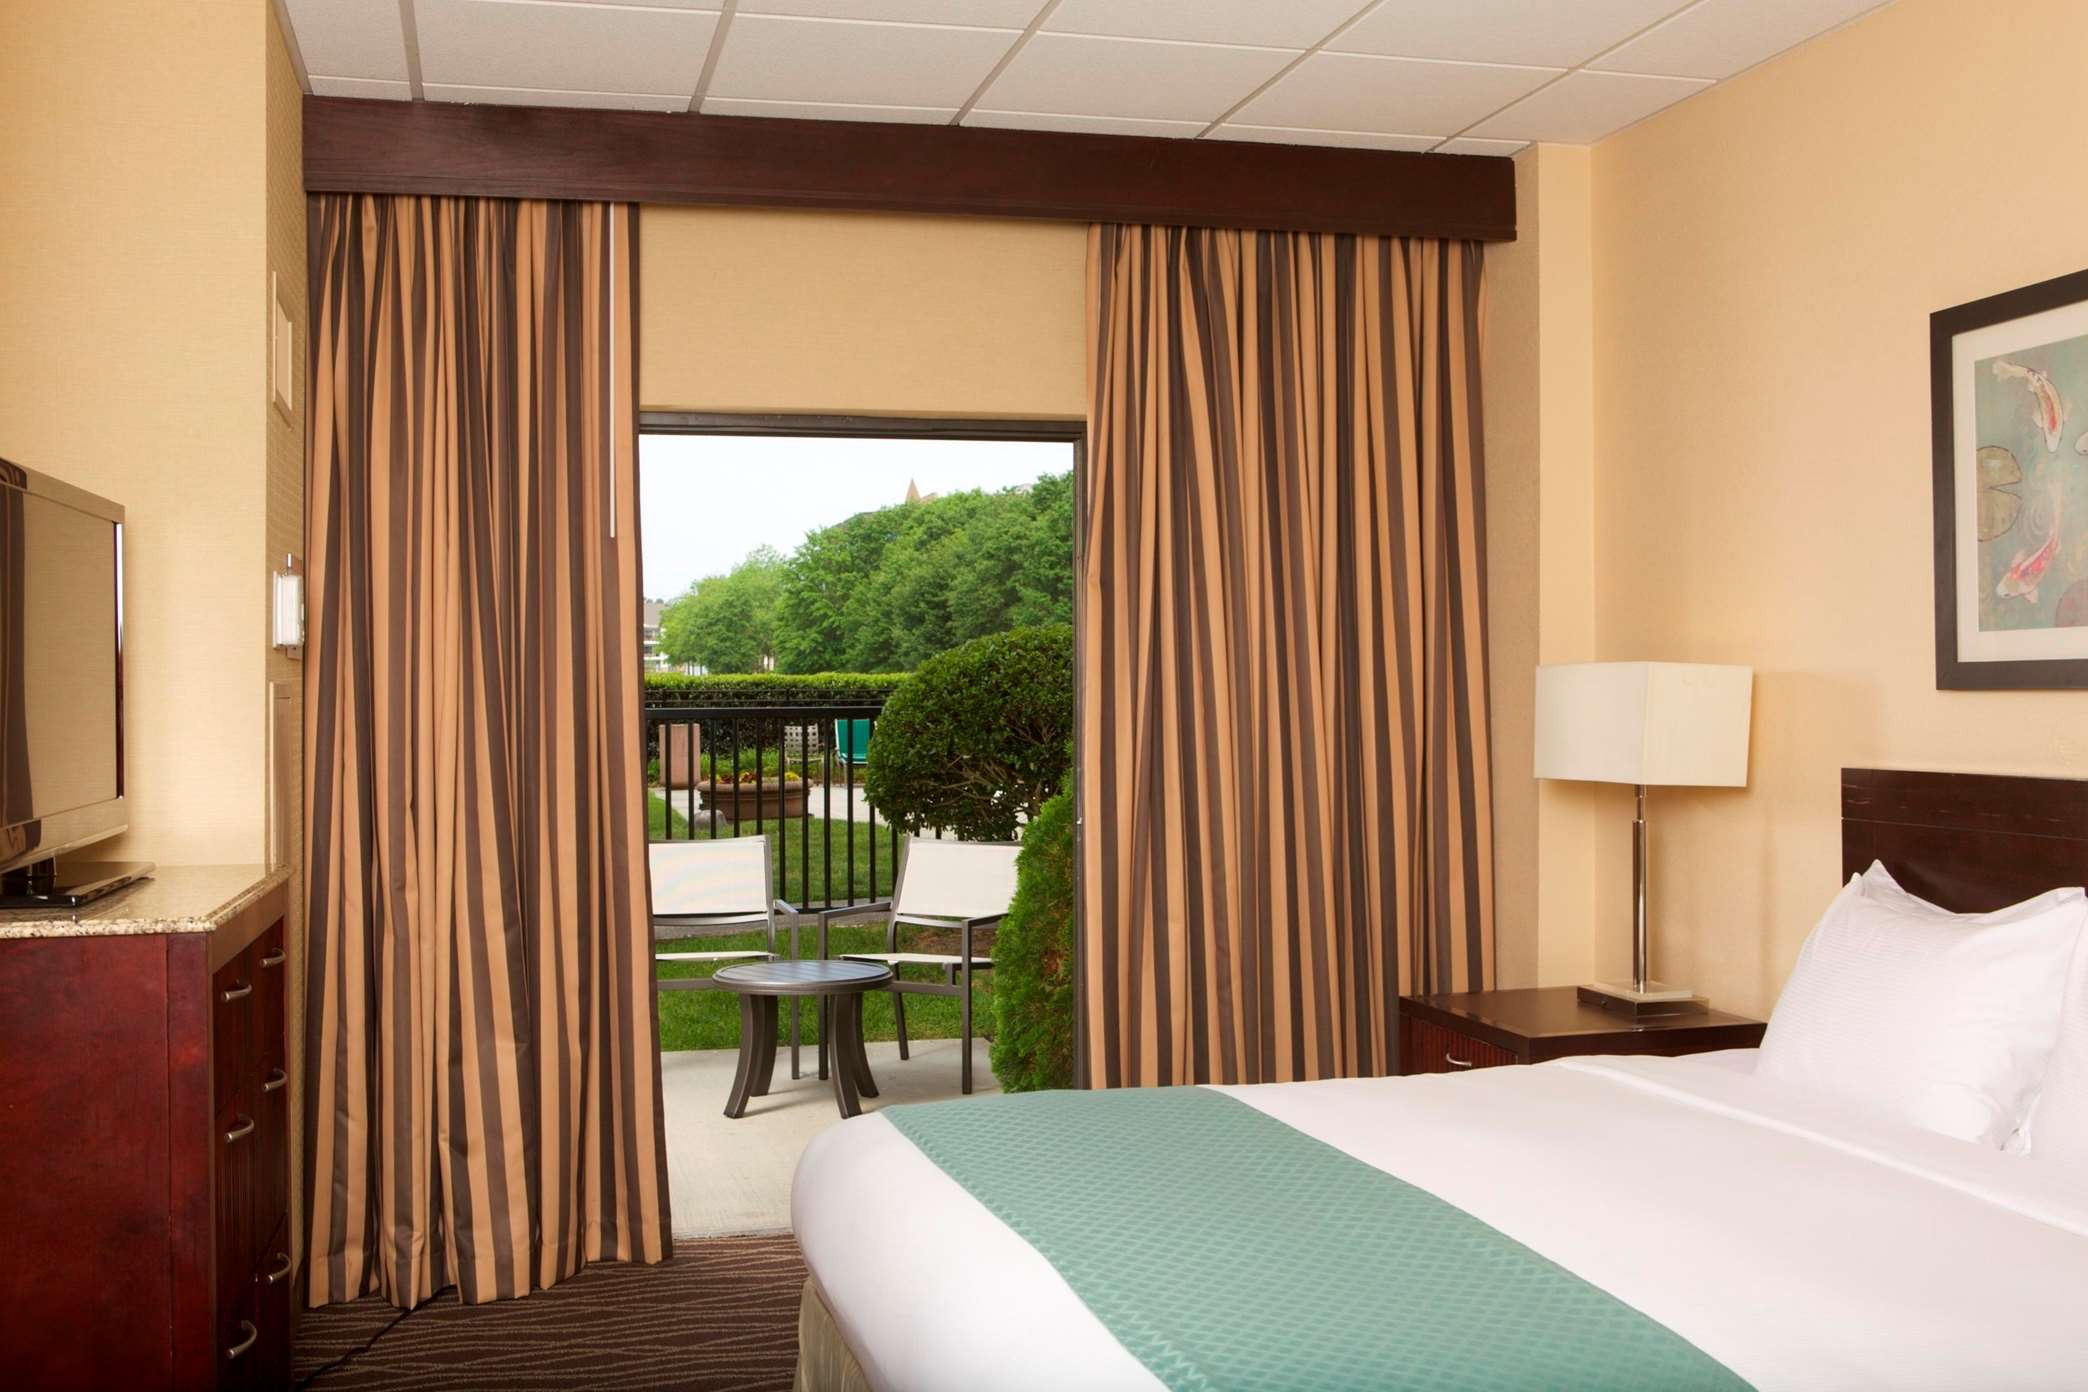 DoubleTree Suites by Hilton Hotel Raleigh - Durham image 27